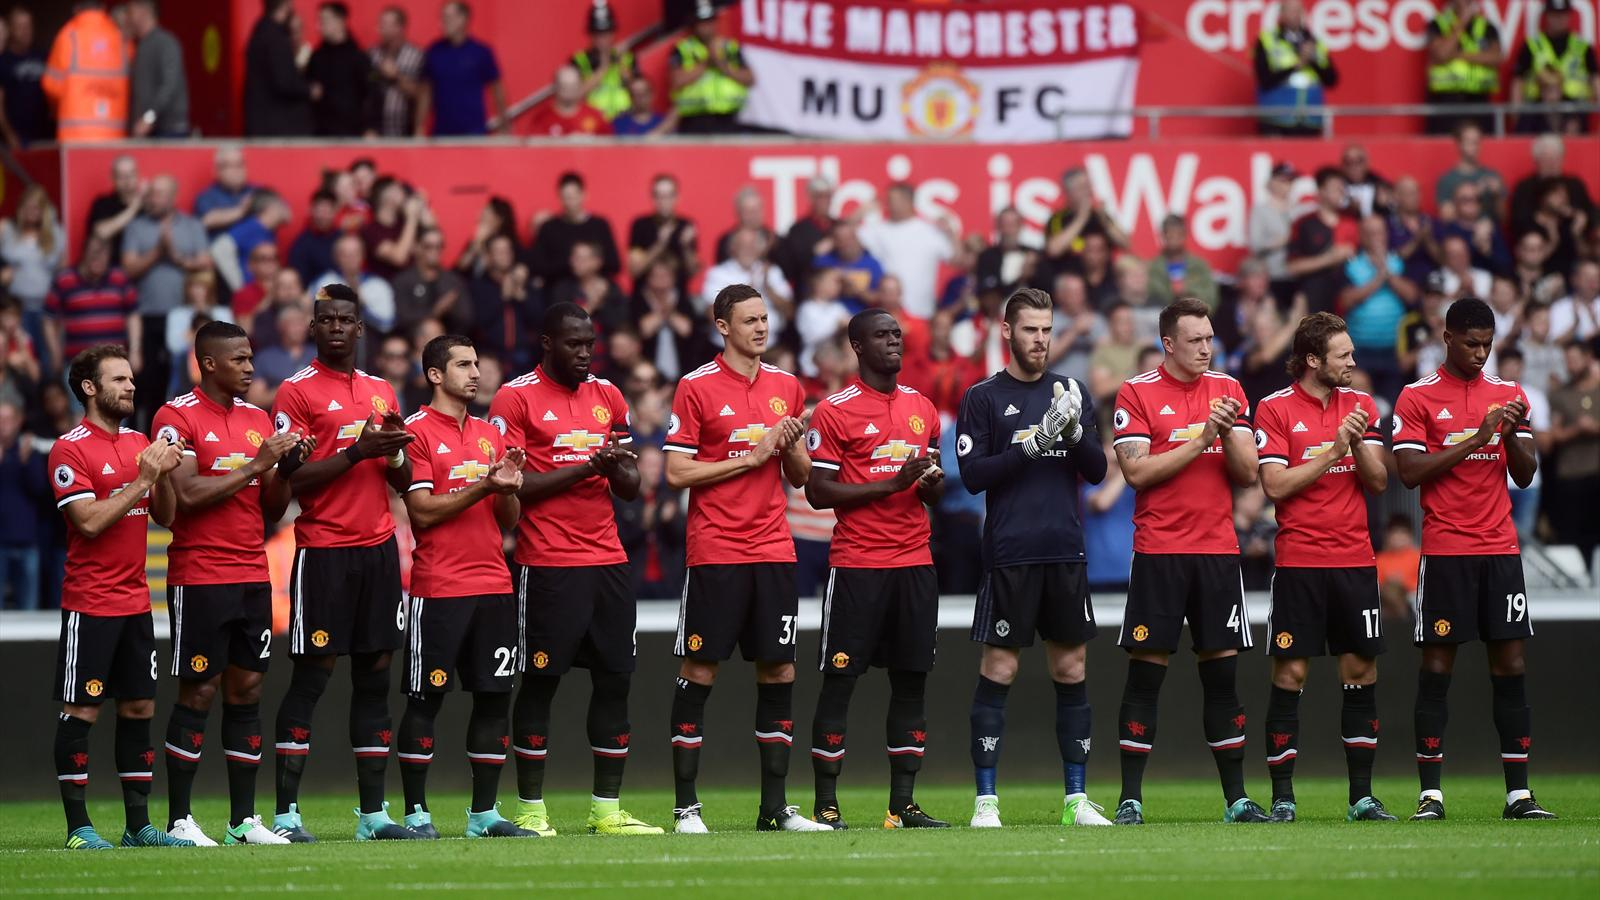 Manchester United Wallpaper Wallpaper Wa Manchester United